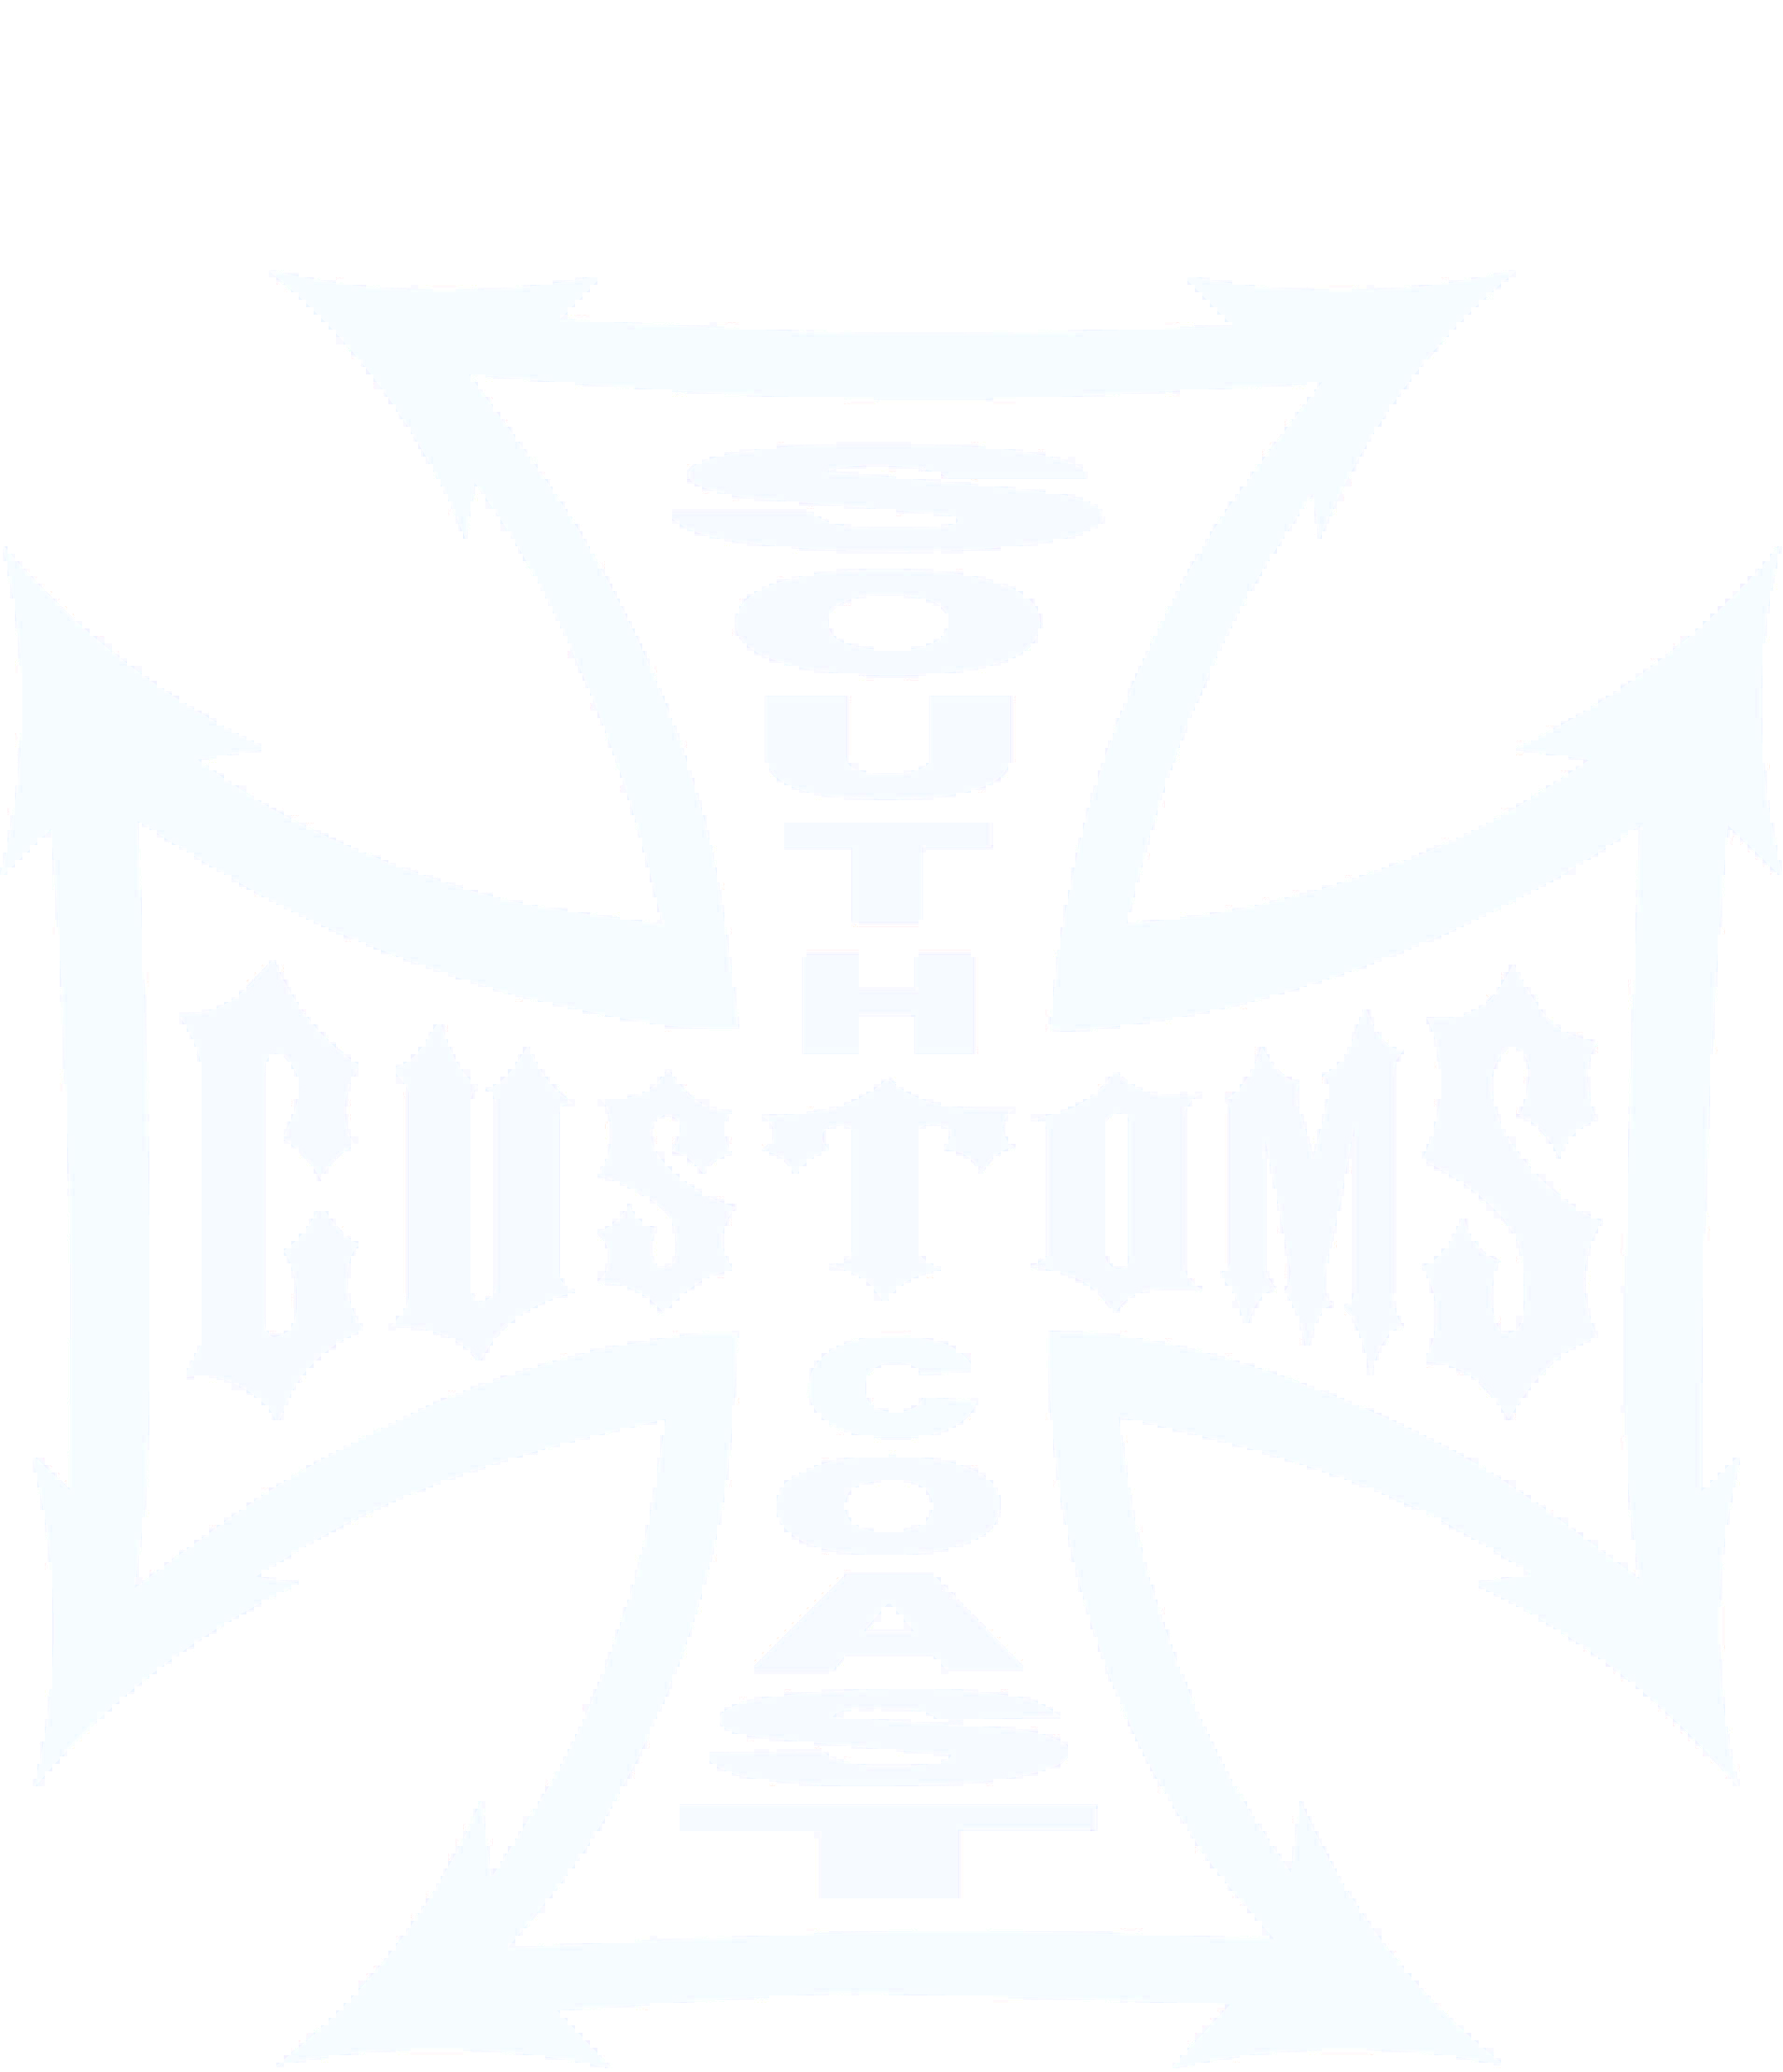 South Coast Customs